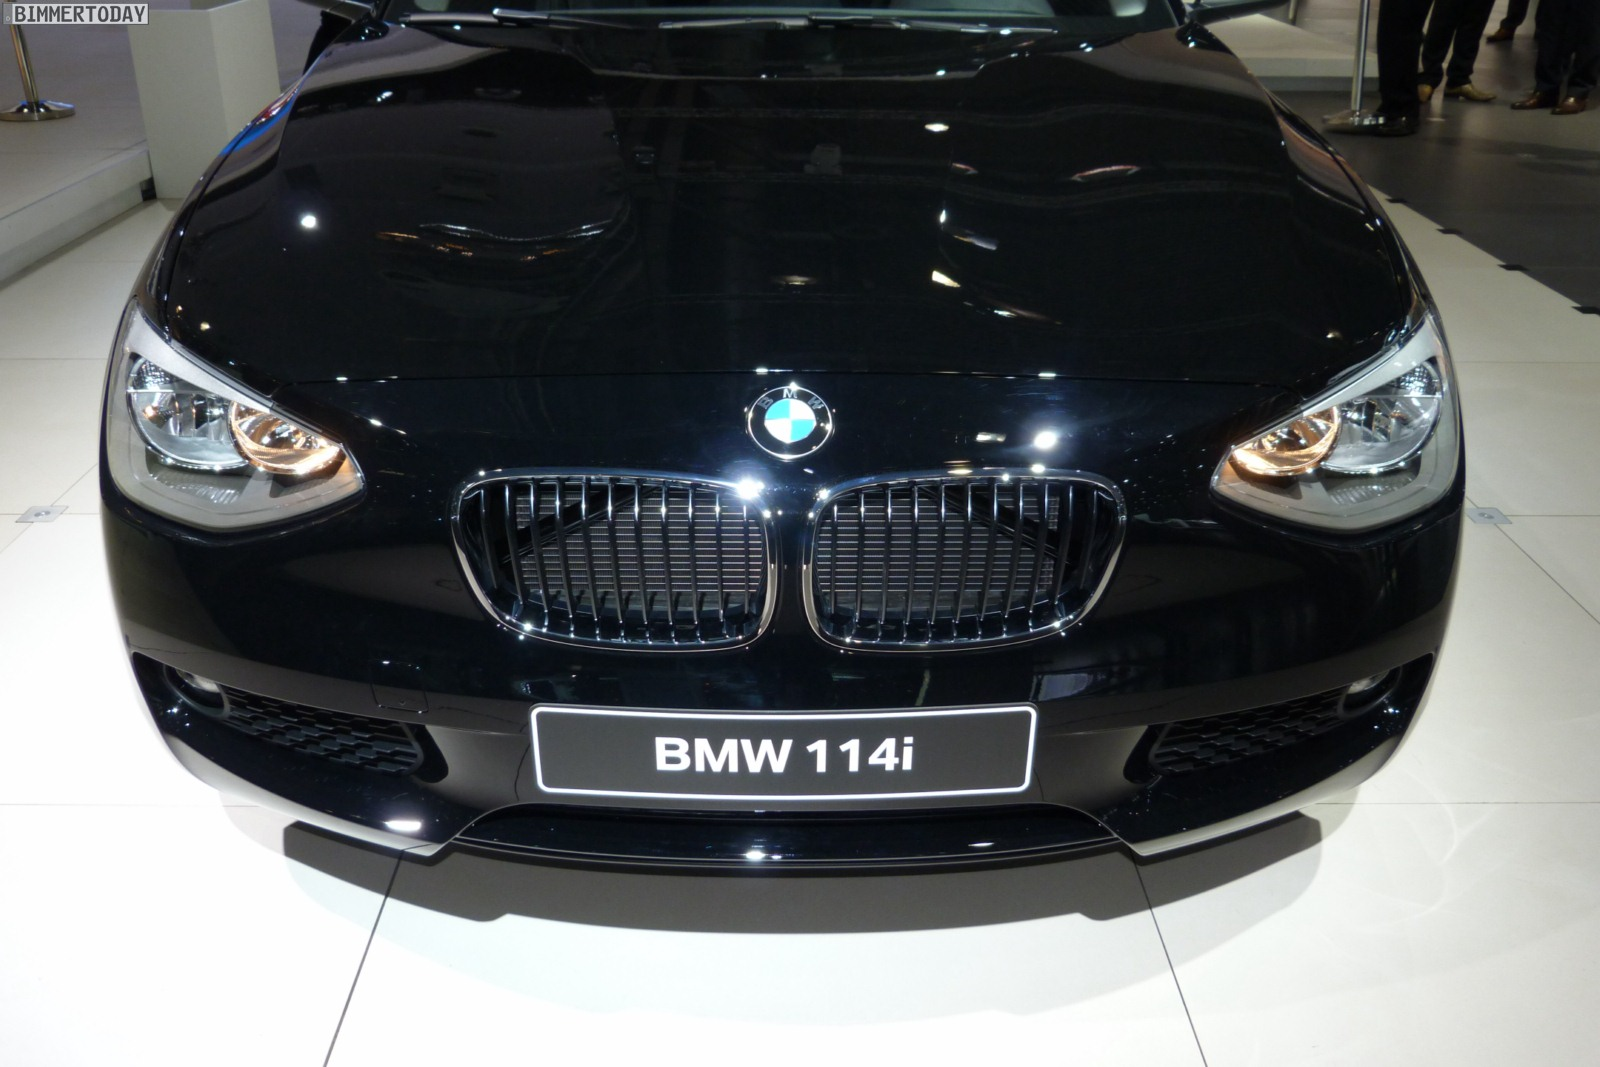 2012 leipzig auto show f21 bmw 1 series hatchback three door. Black Bedroom Furniture Sets. Home Design Ideas